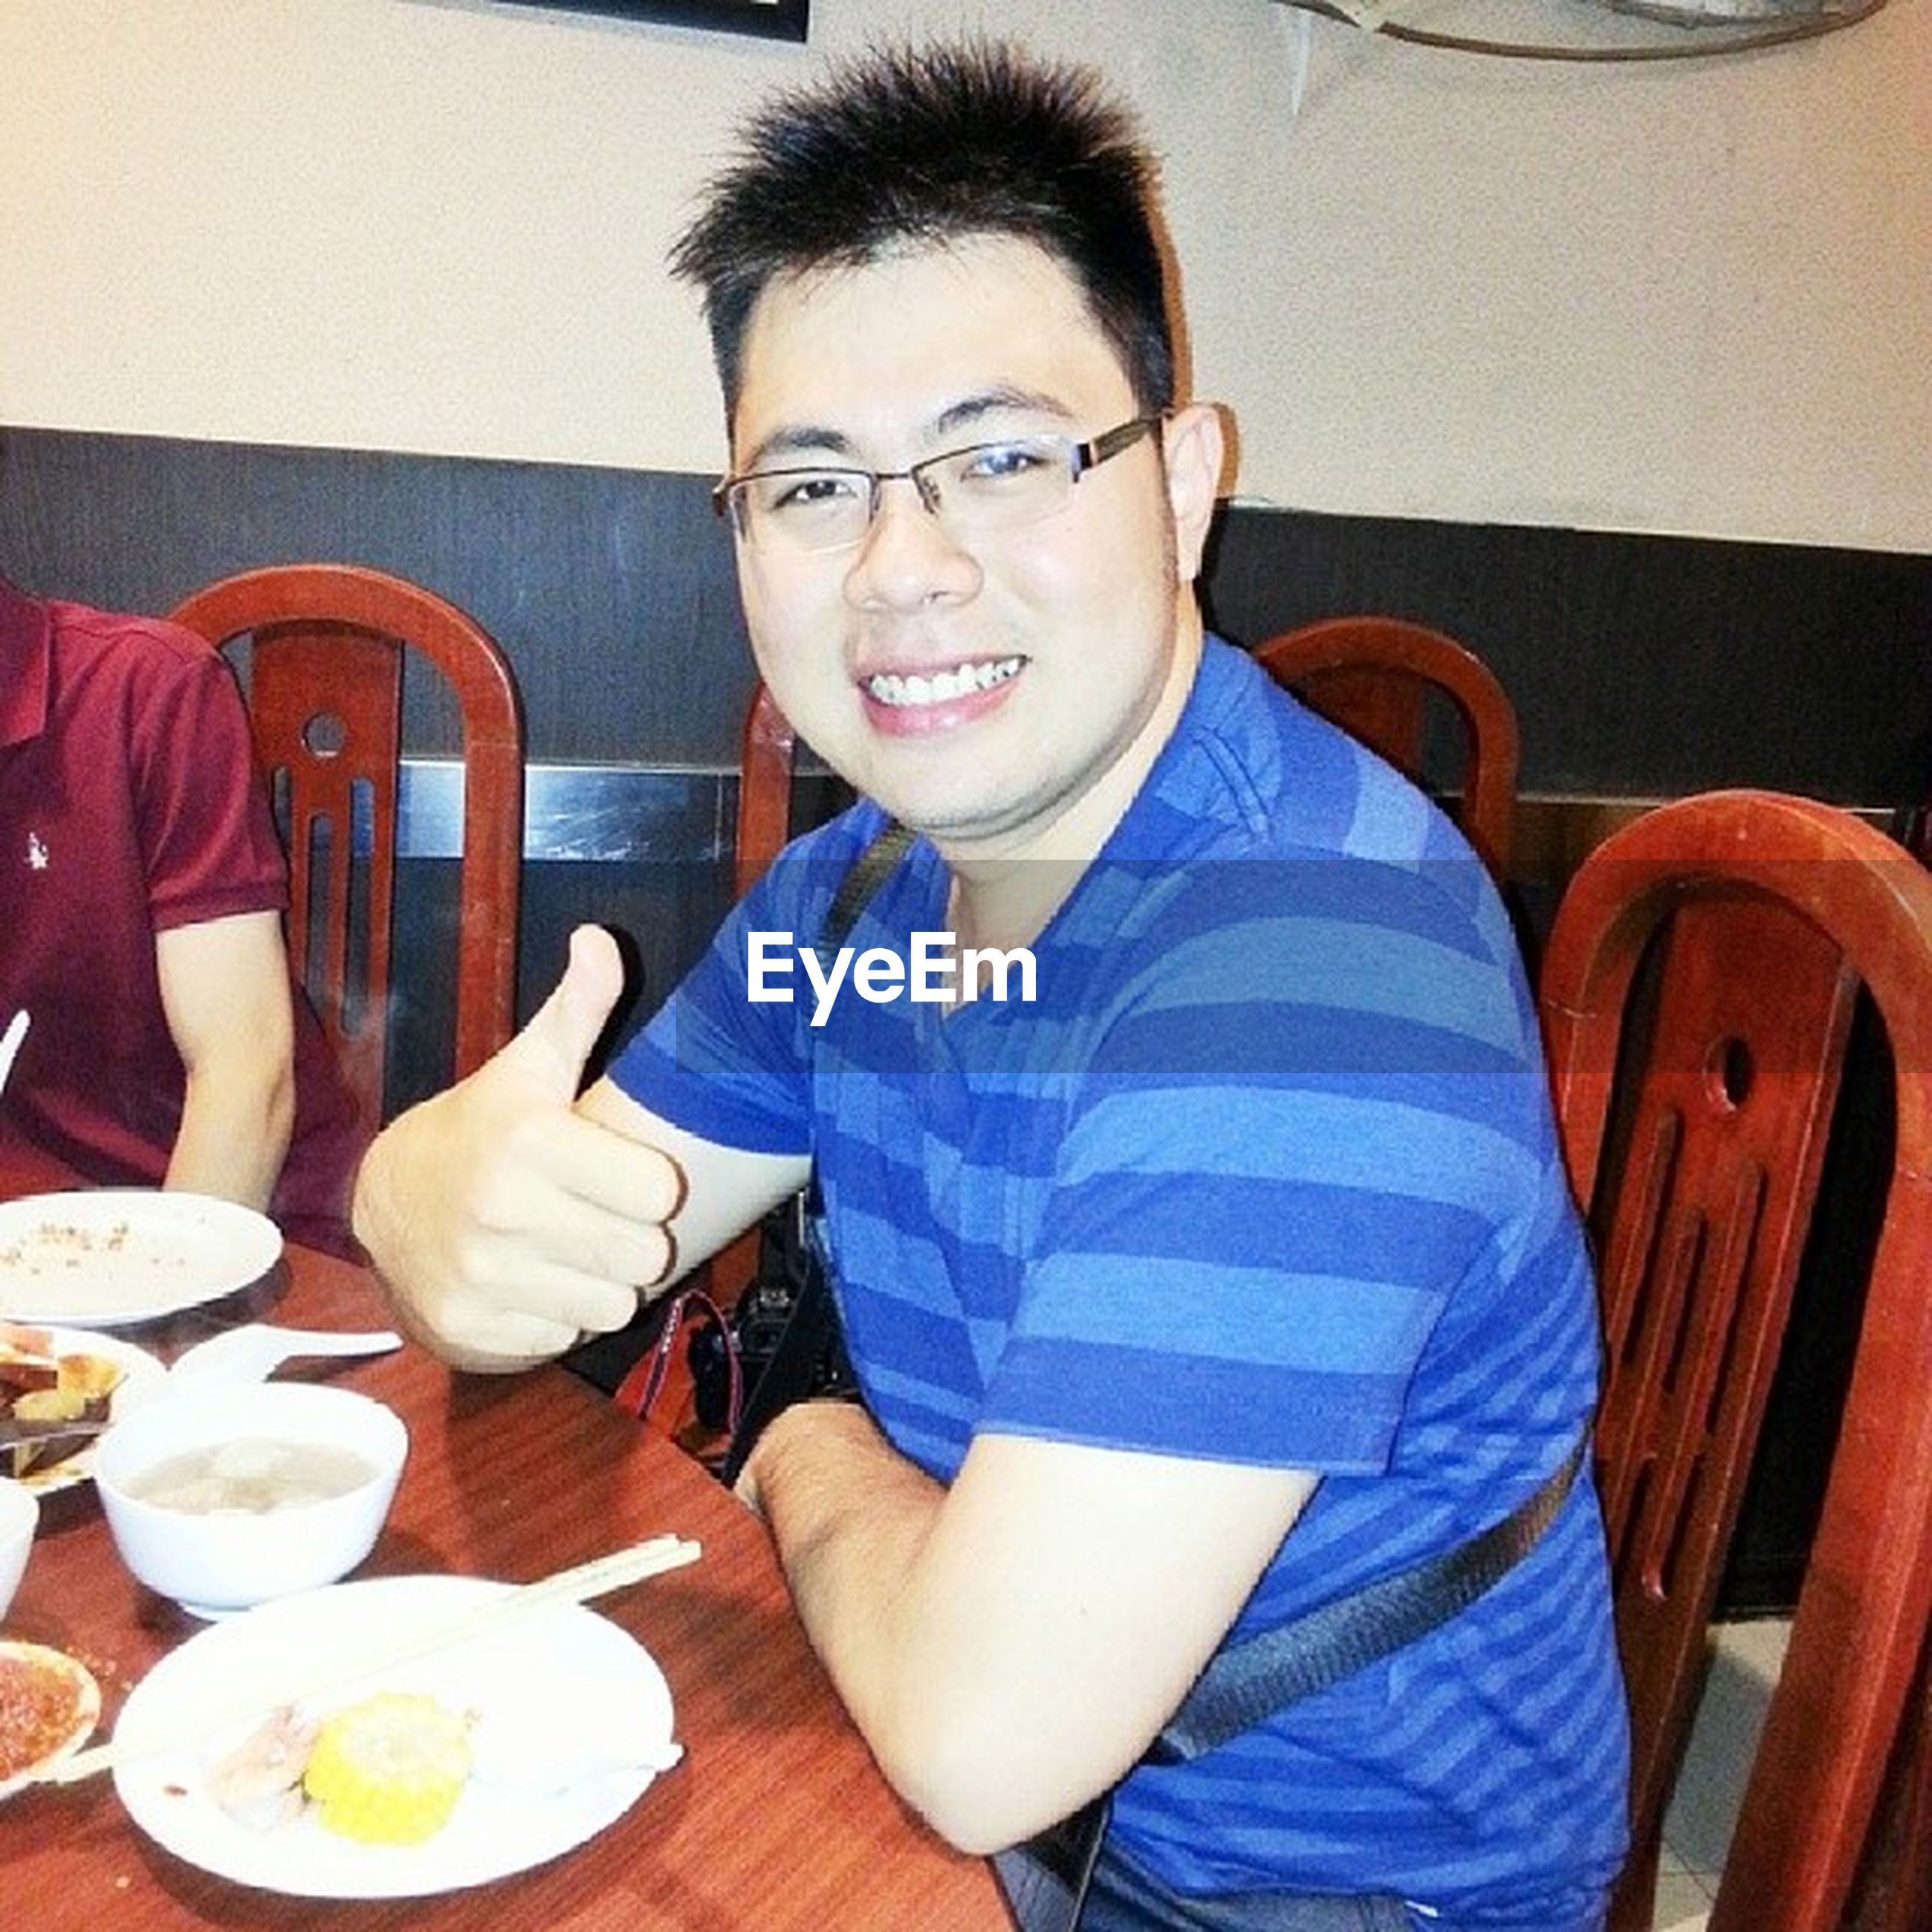 indoors, looking at camera, portrait, person, casual clothing, lifestyles, front view, food and drink, leisure activity, sitting, young adult, young men, smiling, waist up, table, restaurant, happiness, holding